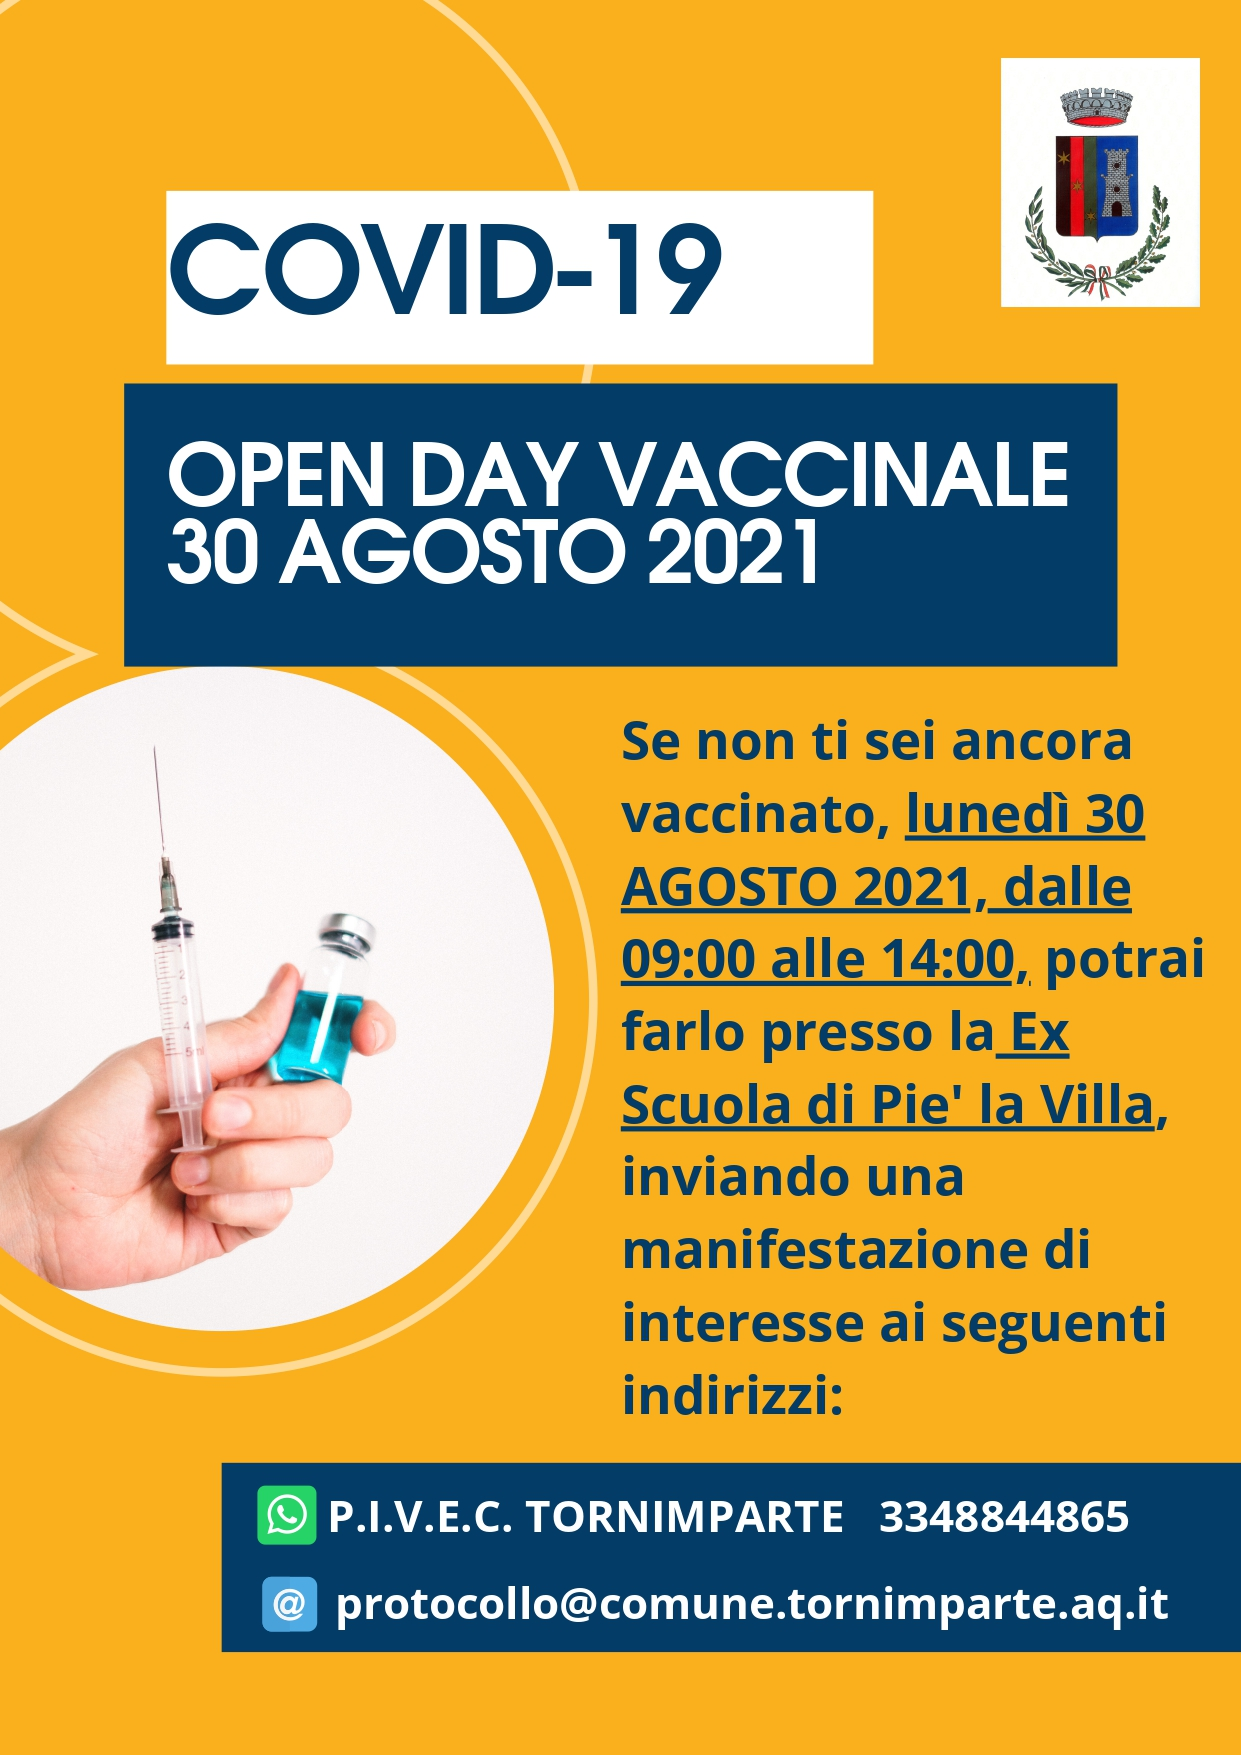 OPEN DAY VACCINALE